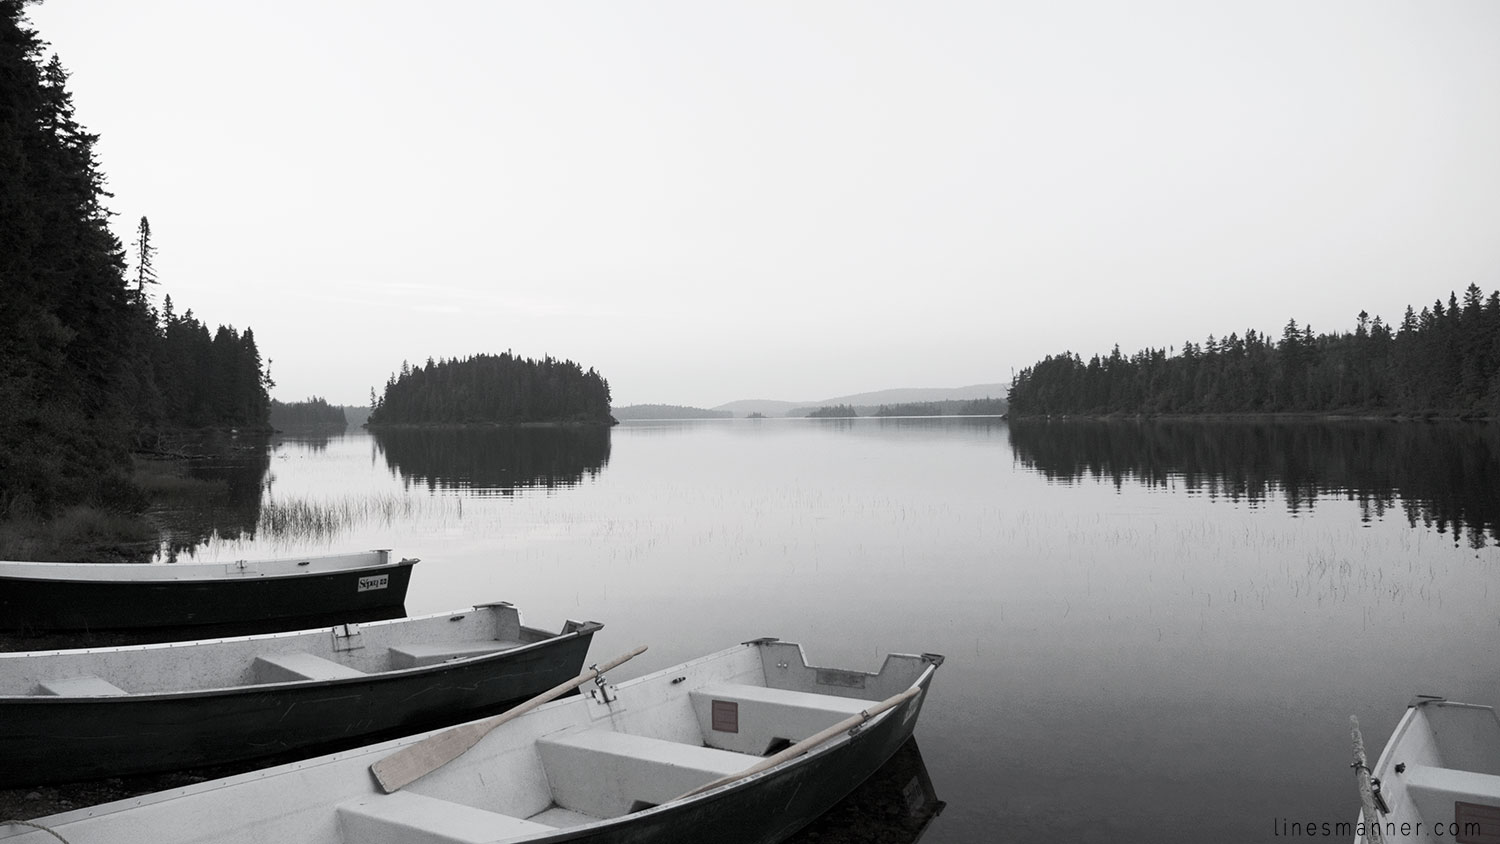 Lines-Manner-Photography-Escape-Peaceful-Serenity-Travel-Canada-Quebec-Places-Holiday-Weekend-Islands-World-Trip-9